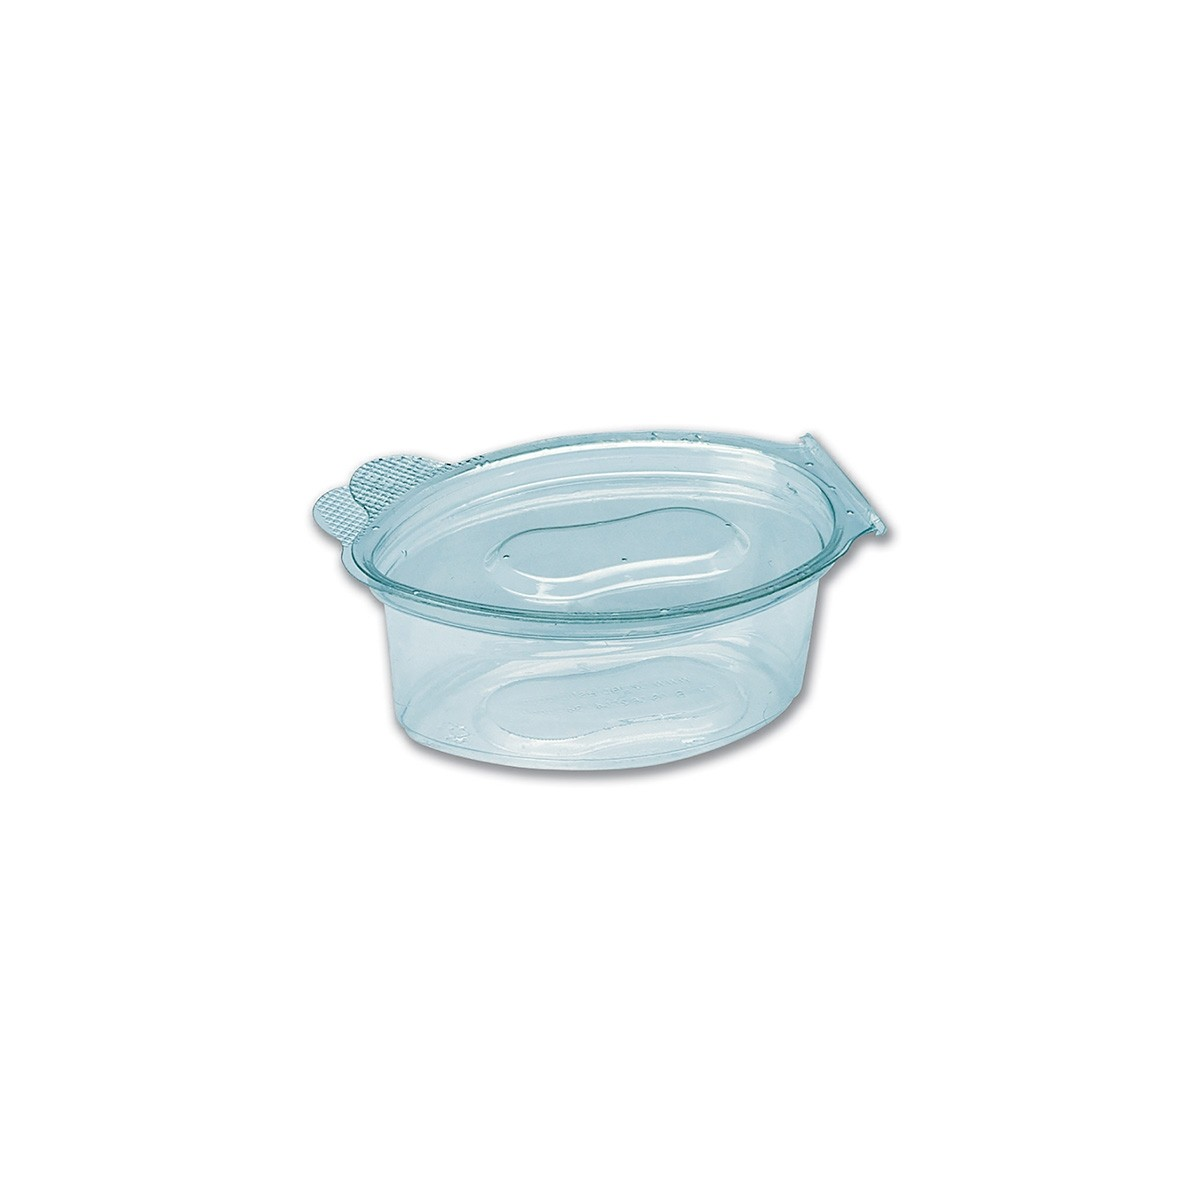 Tinypac Clear Leaf-Shaped Portion Cup w/ Lid 30cc| 2000pcs